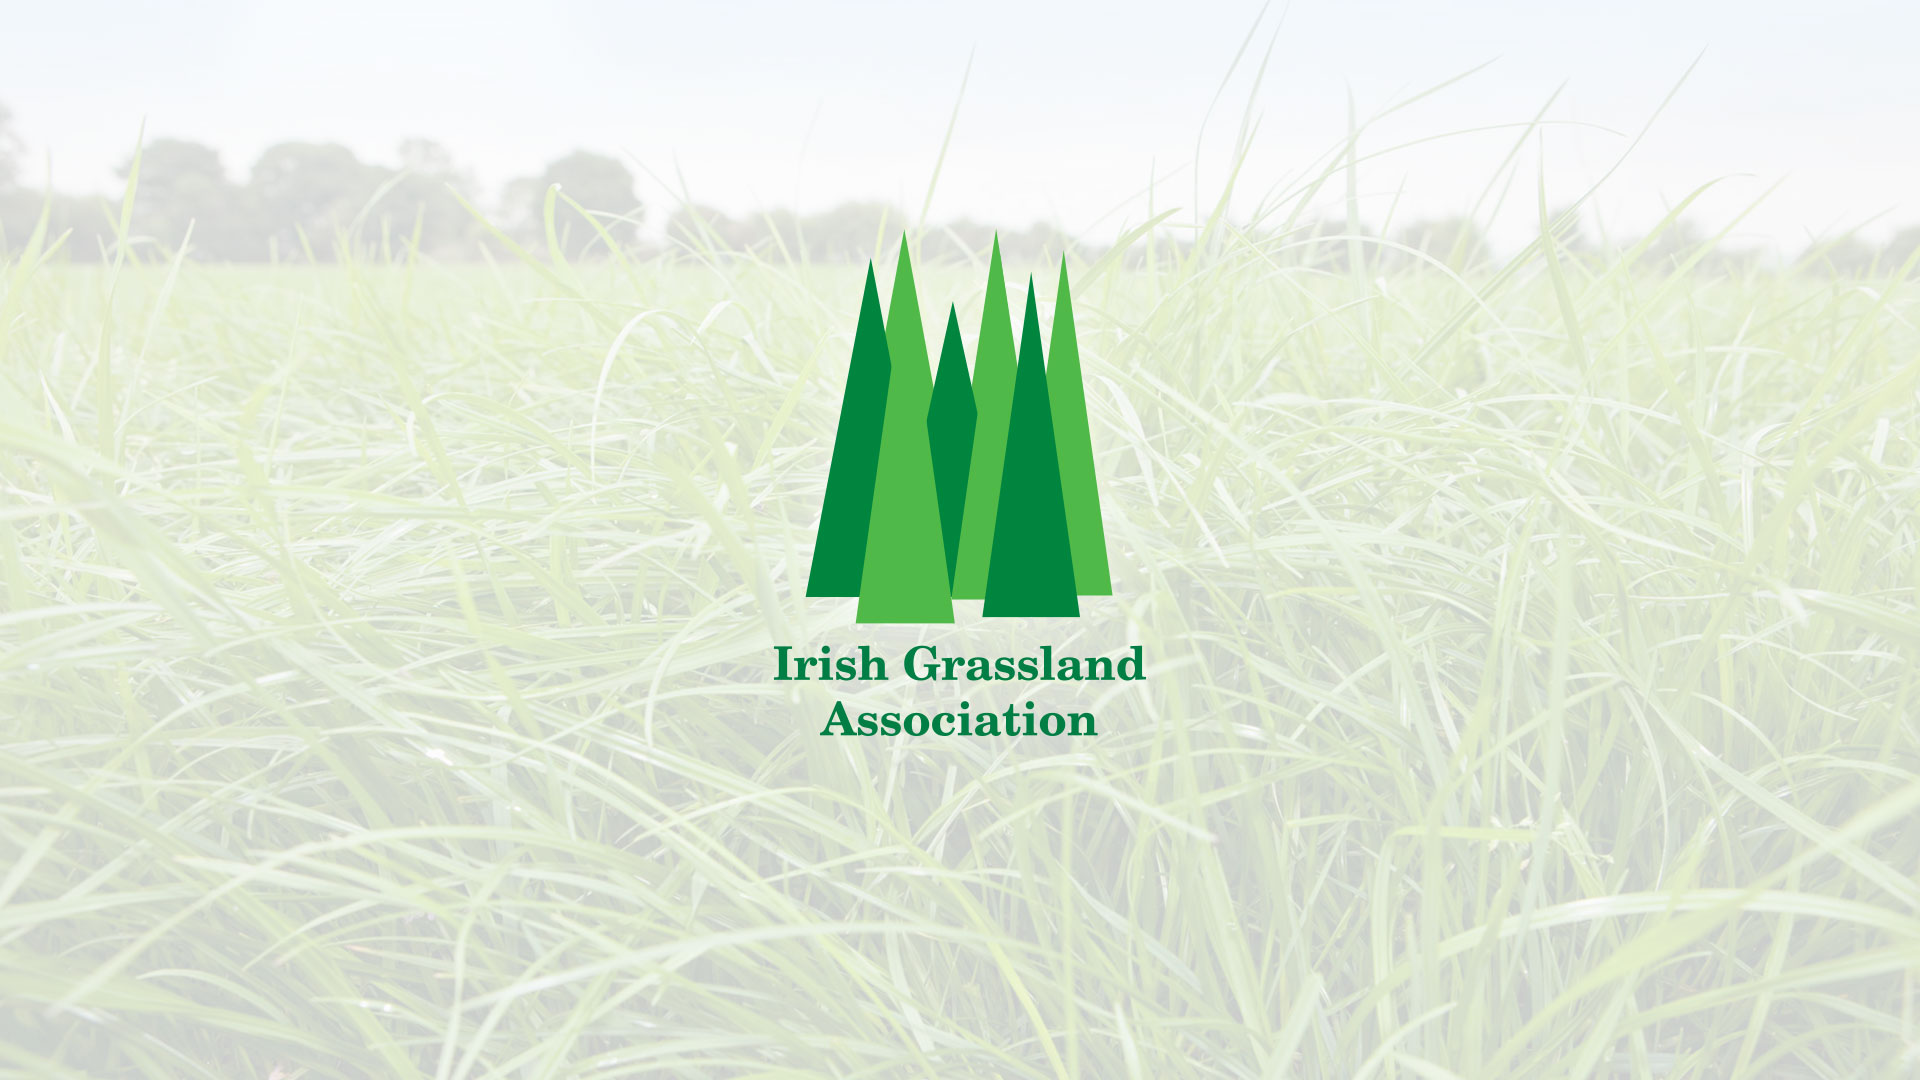 Portfolio: Irish Grassland Association